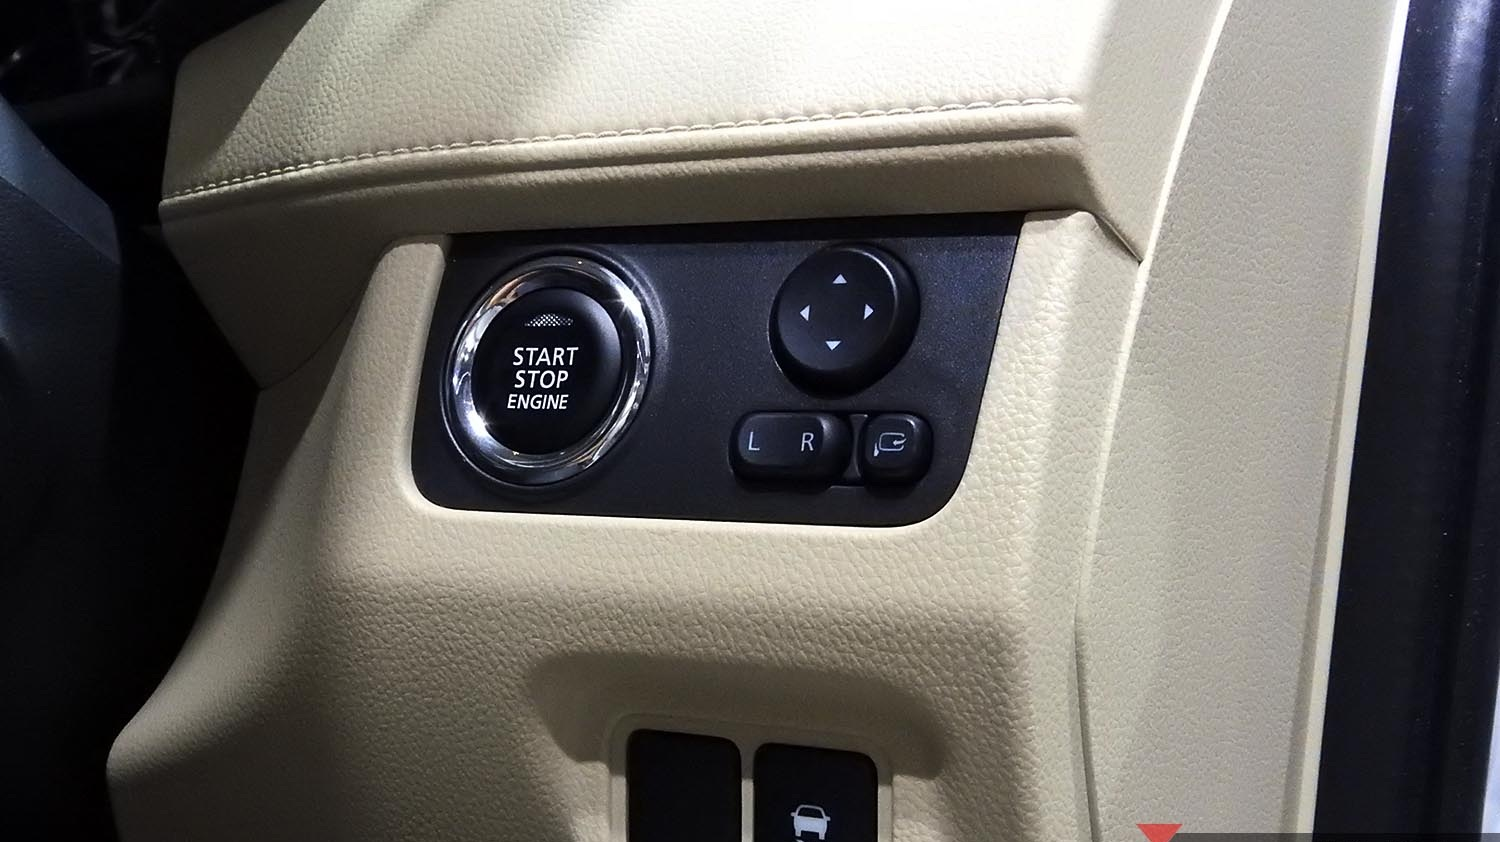 apart from the mentioned smart entry mitsubishi xpander also has a start stop engine button where only xpander has it compared to rivals  [ 1500 x 842 Pixel ]